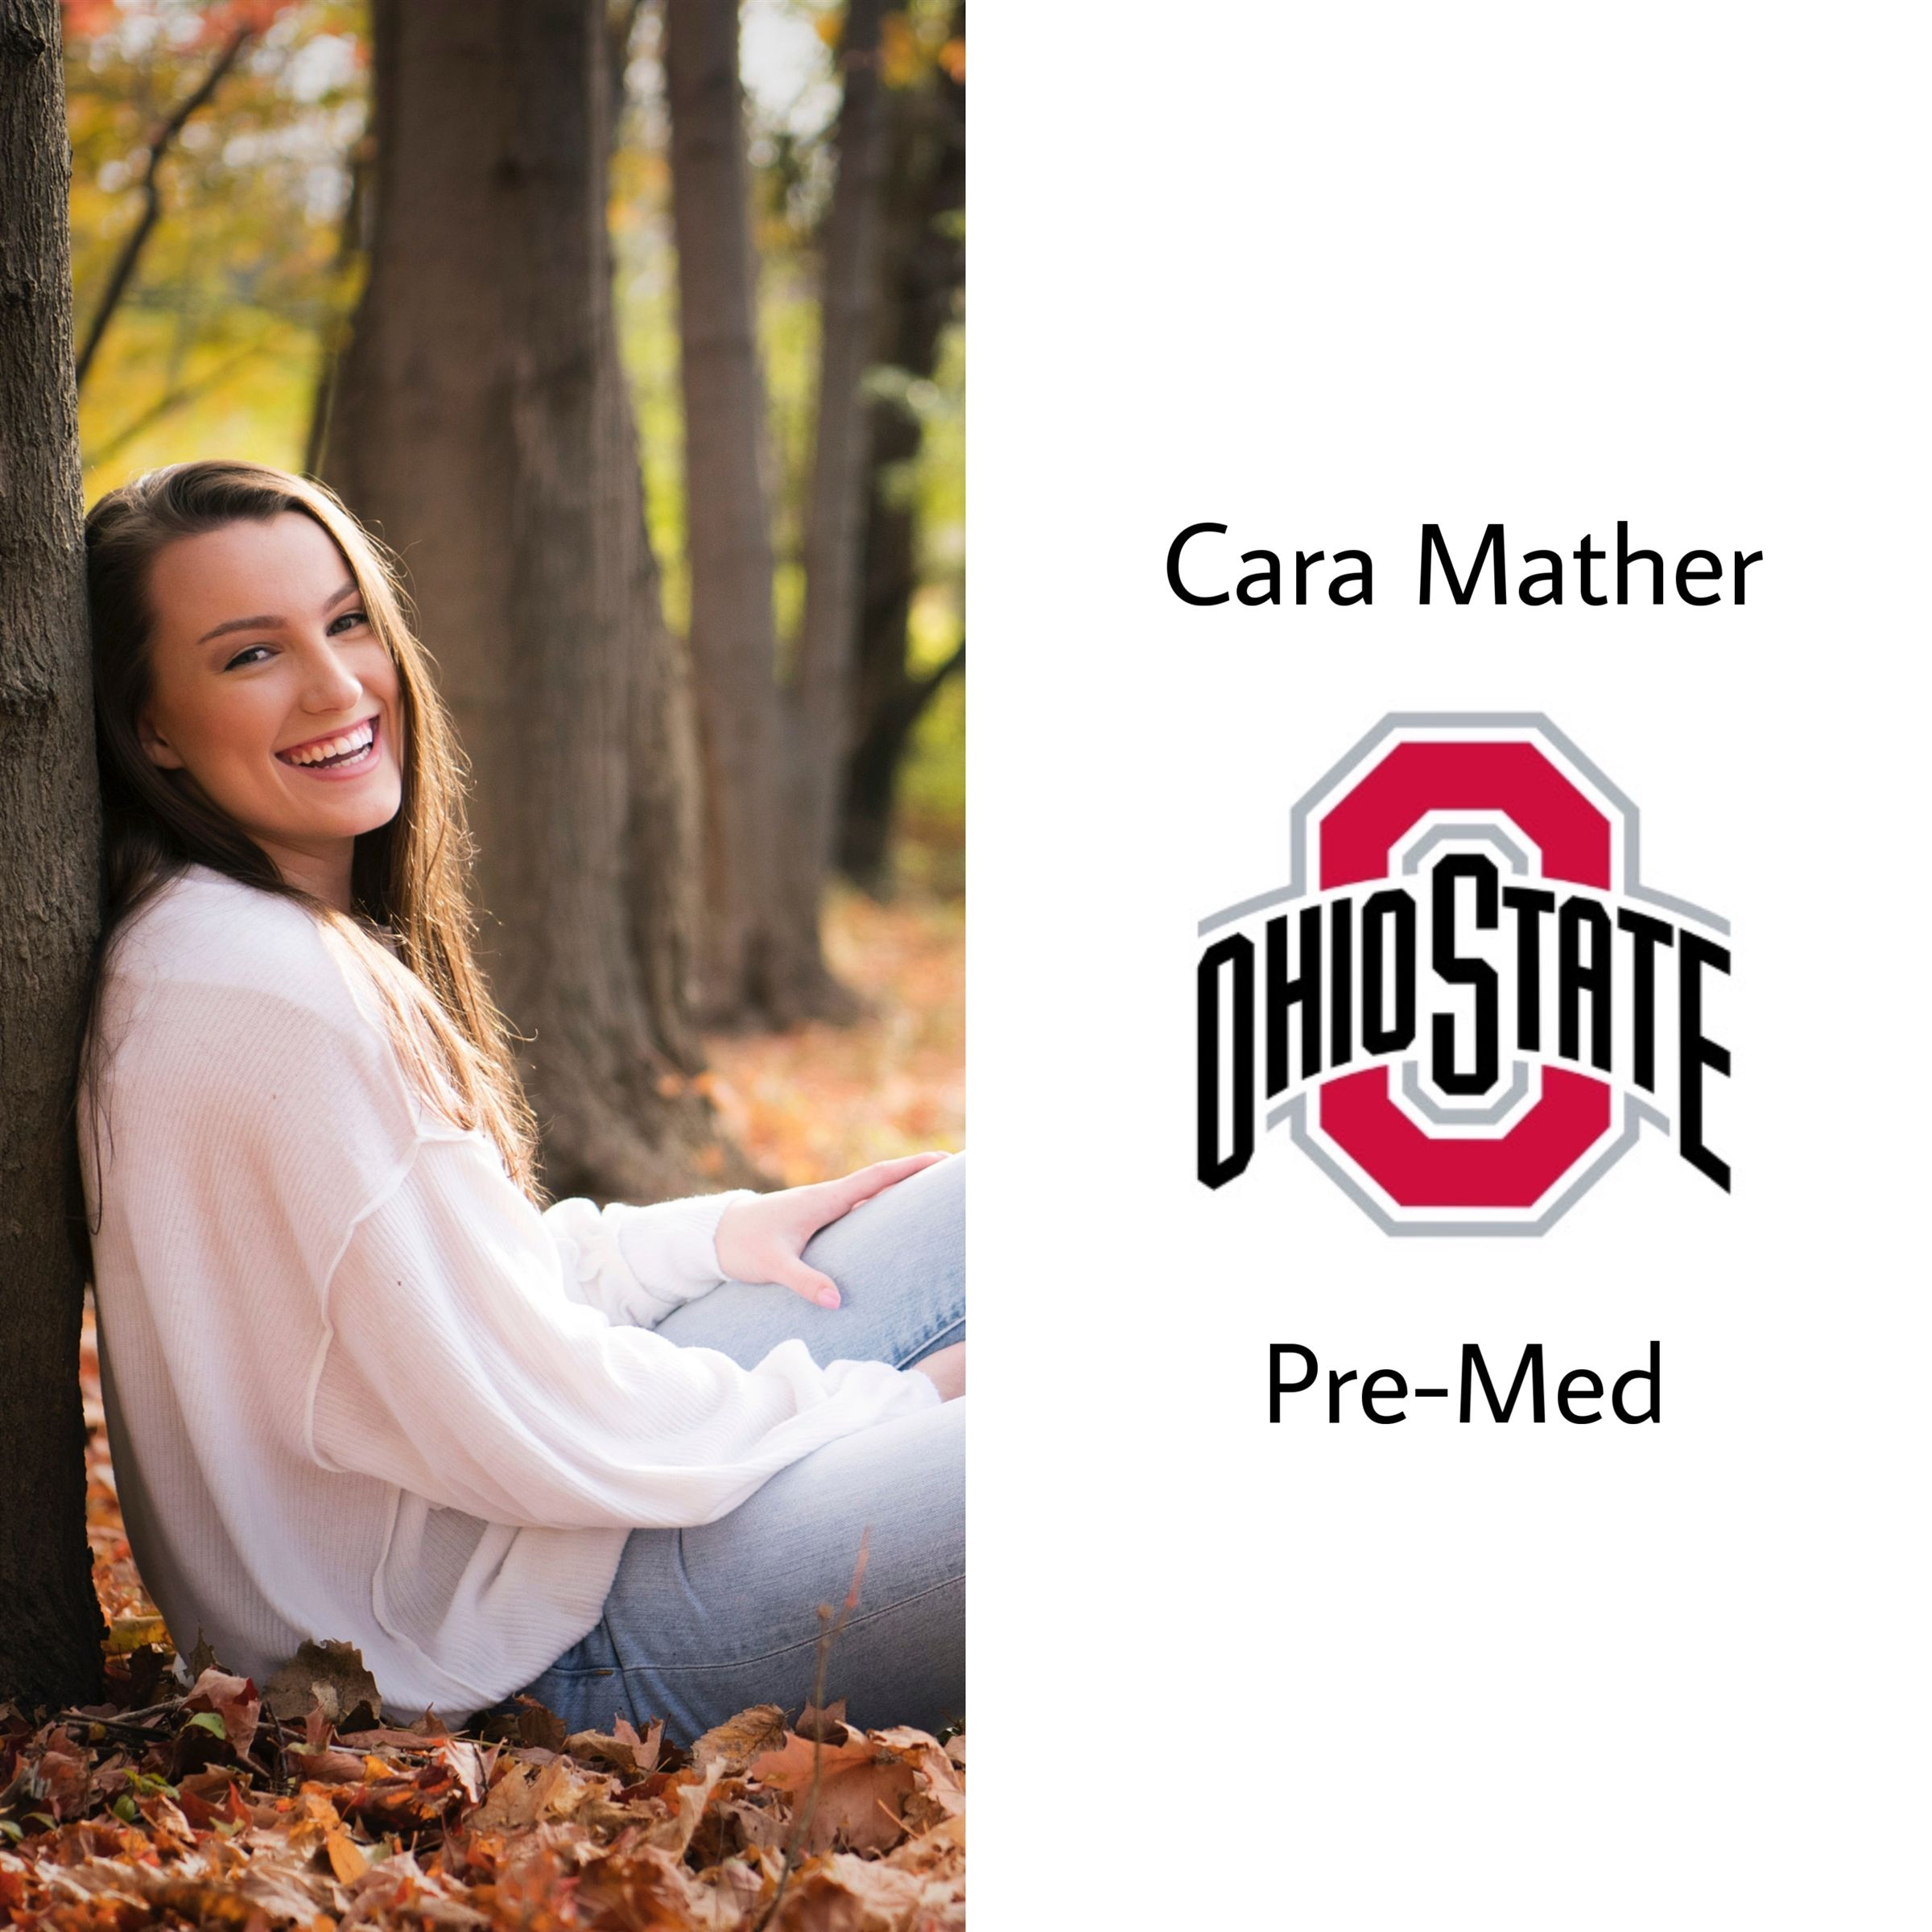 Congrats Cara on t'OSU!! She will be attending next fall with a major in pre-med. Go bucks!!!